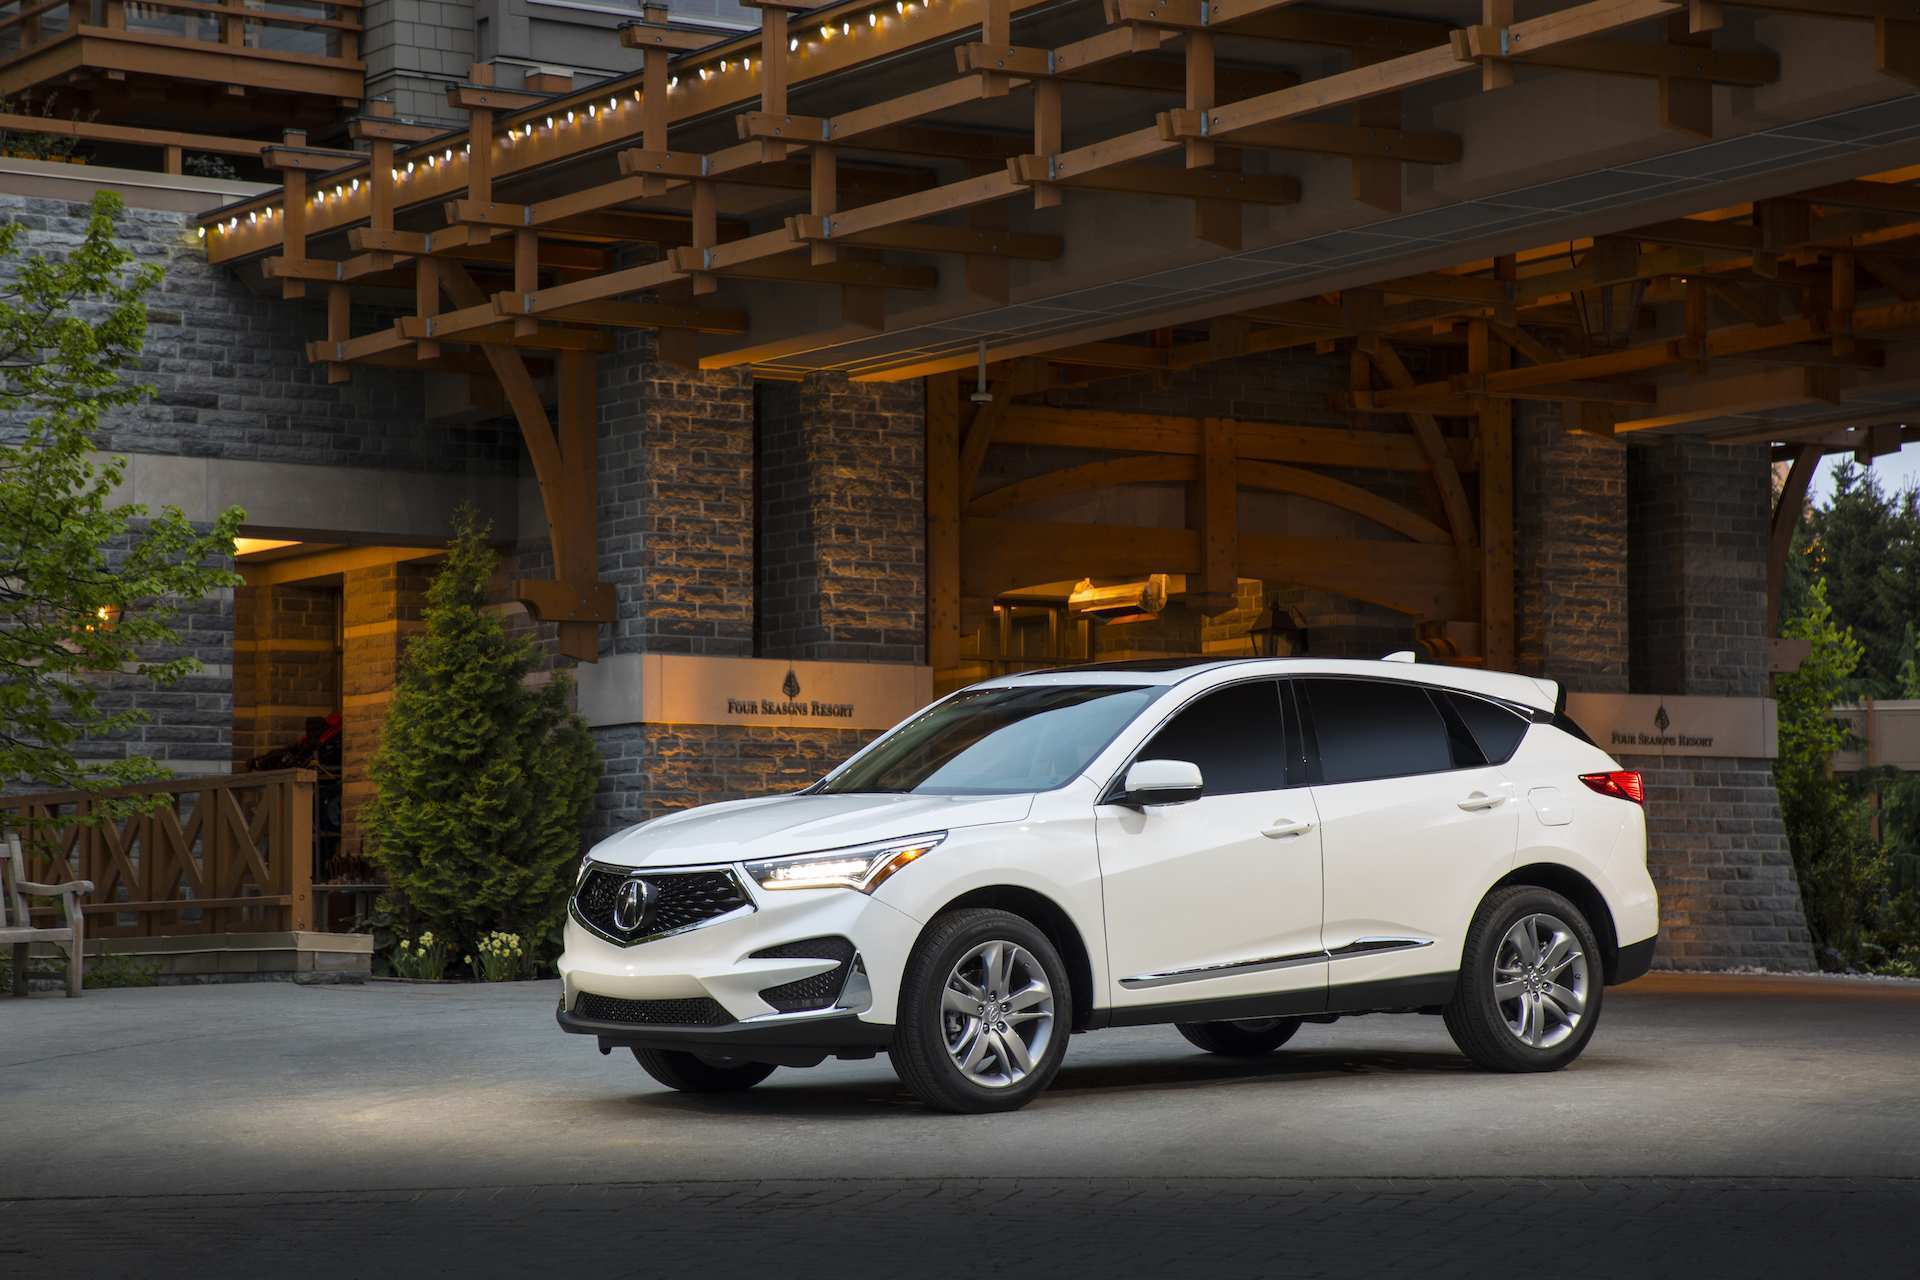 43 A When Is The 2020 Acura Rdx Coming Out Price